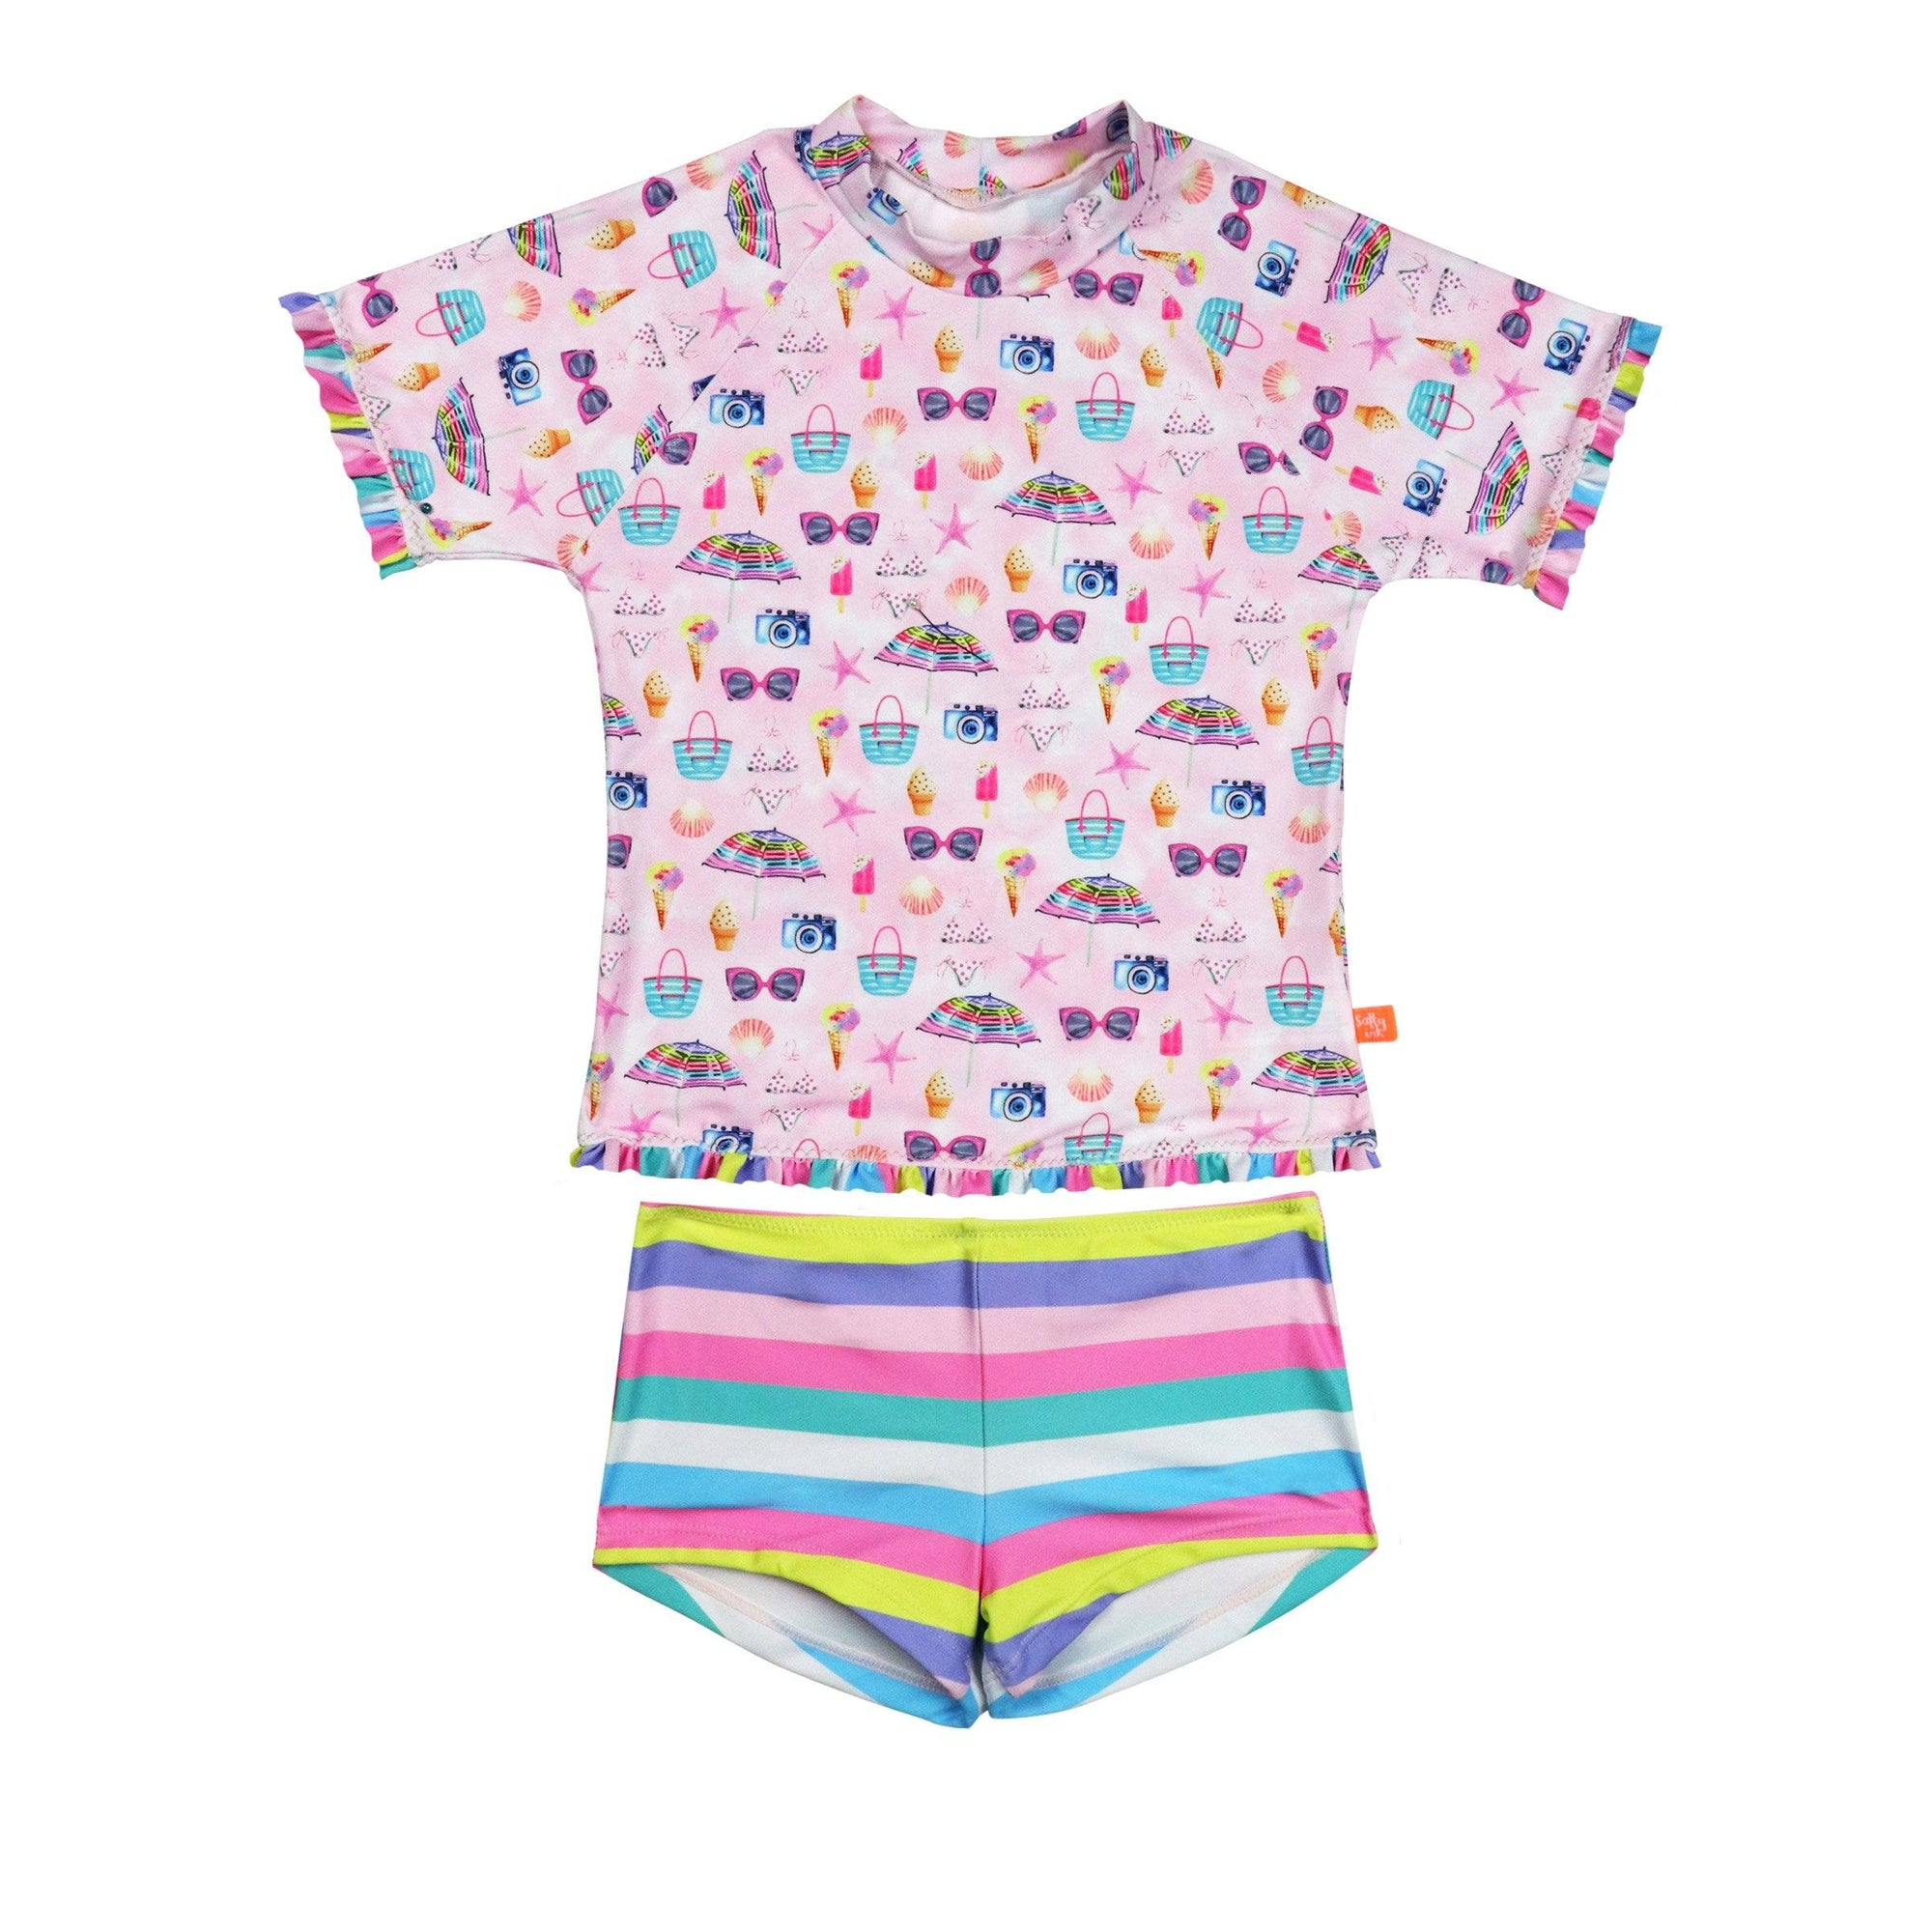 Miss Seaside S/S Rashvest Set LITTLE GIRLS SWIMWEAR SALTY INK